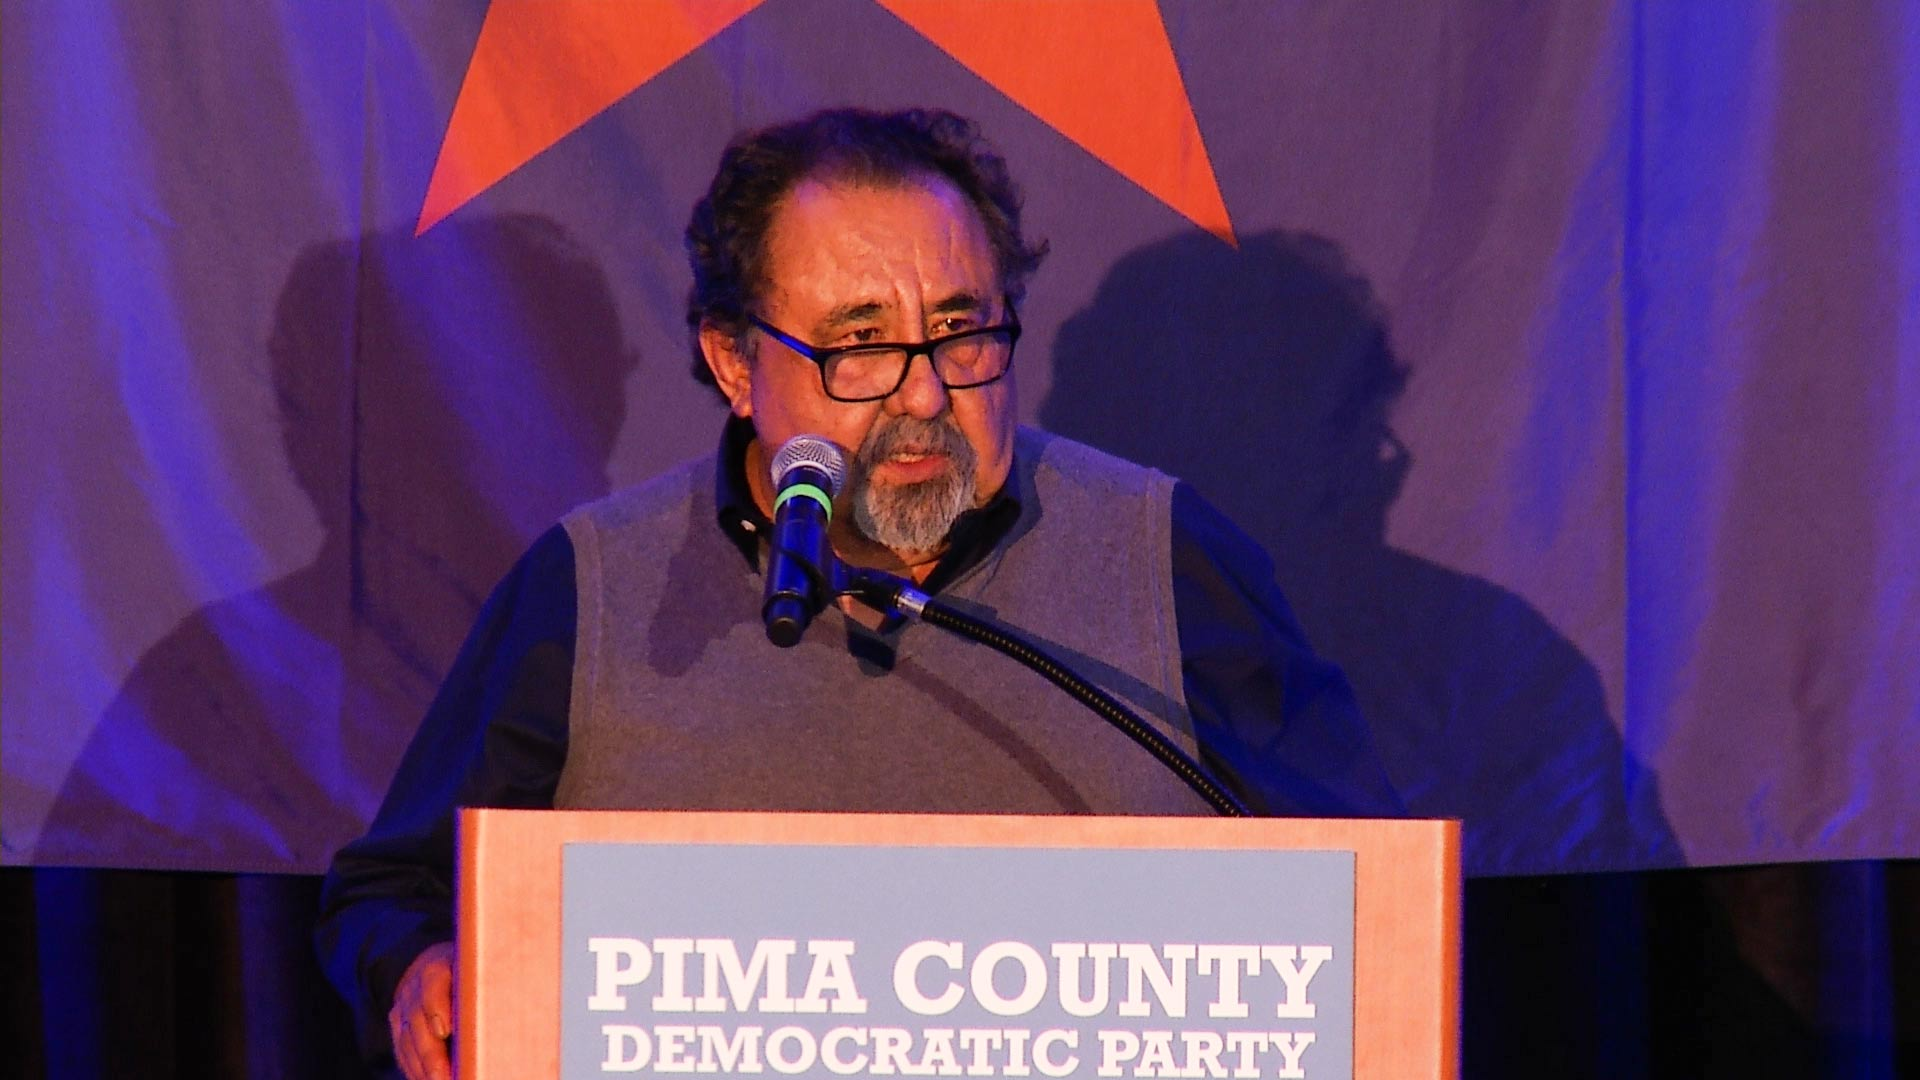 U.S. Rep. Raul Grijalva speaks the the Pima County Democratic Party election night event, Nov. 6, 2018.